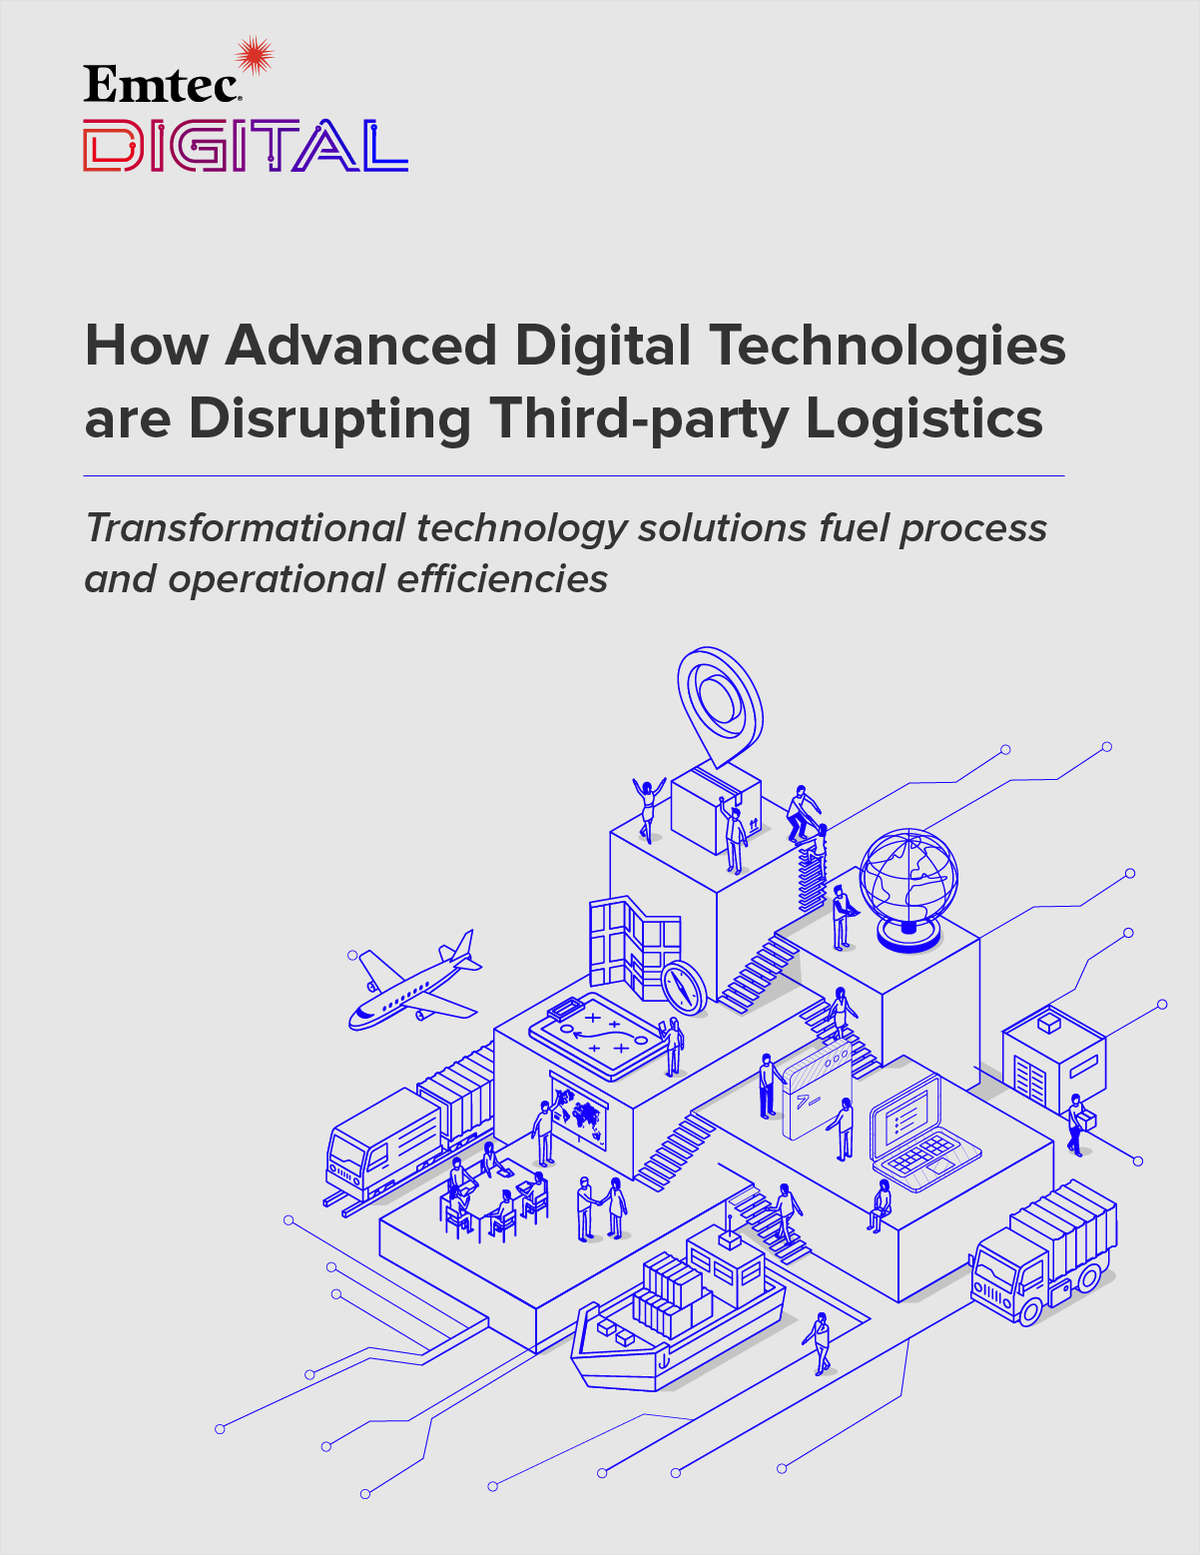 How Advanced Digital Technologies are Disrupting Third-party Logistics